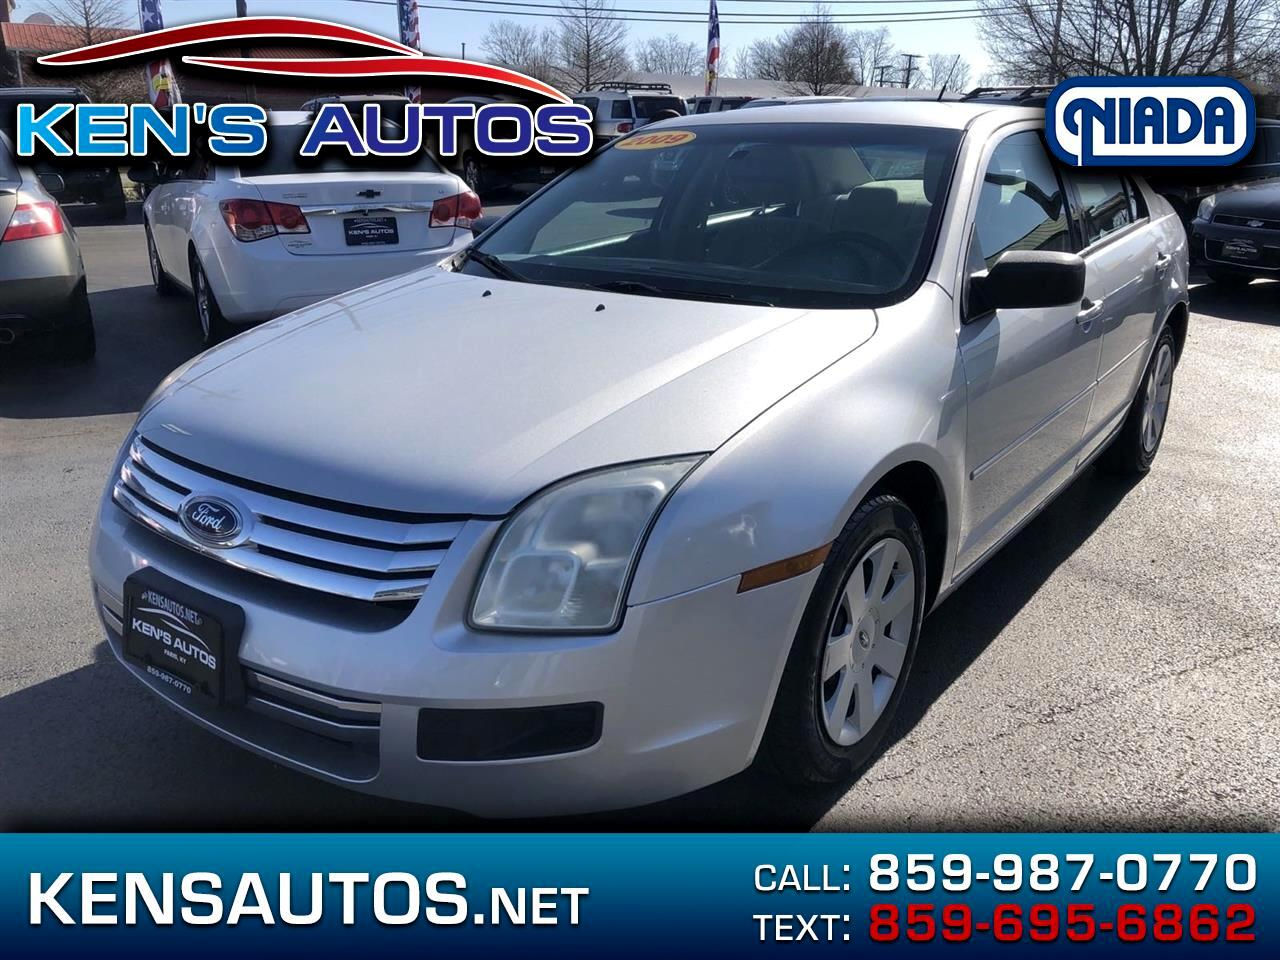 Ford Fusion I4 S 2009